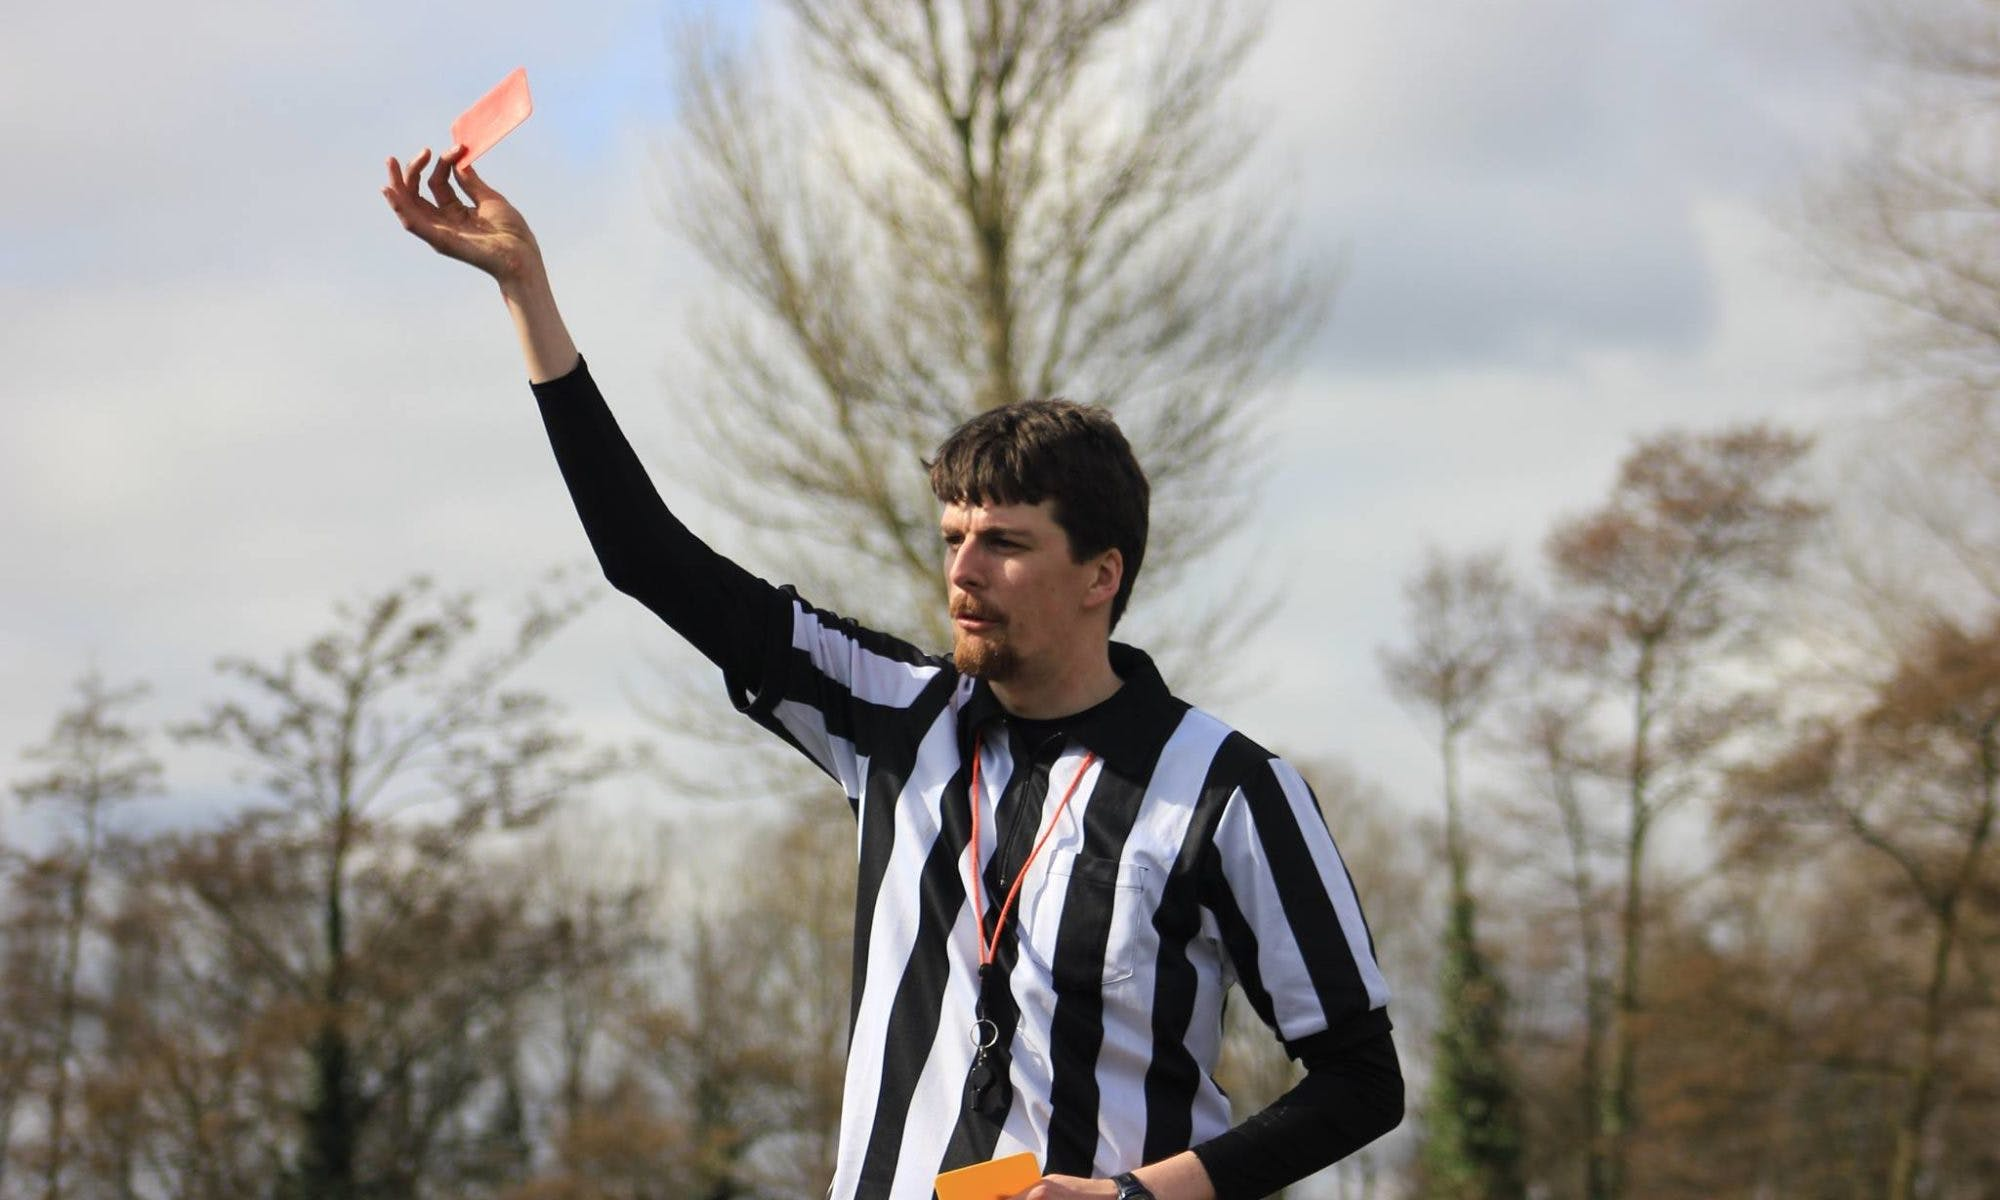 Eamonn Harrison holds a red card while refereeing a Quidditch match